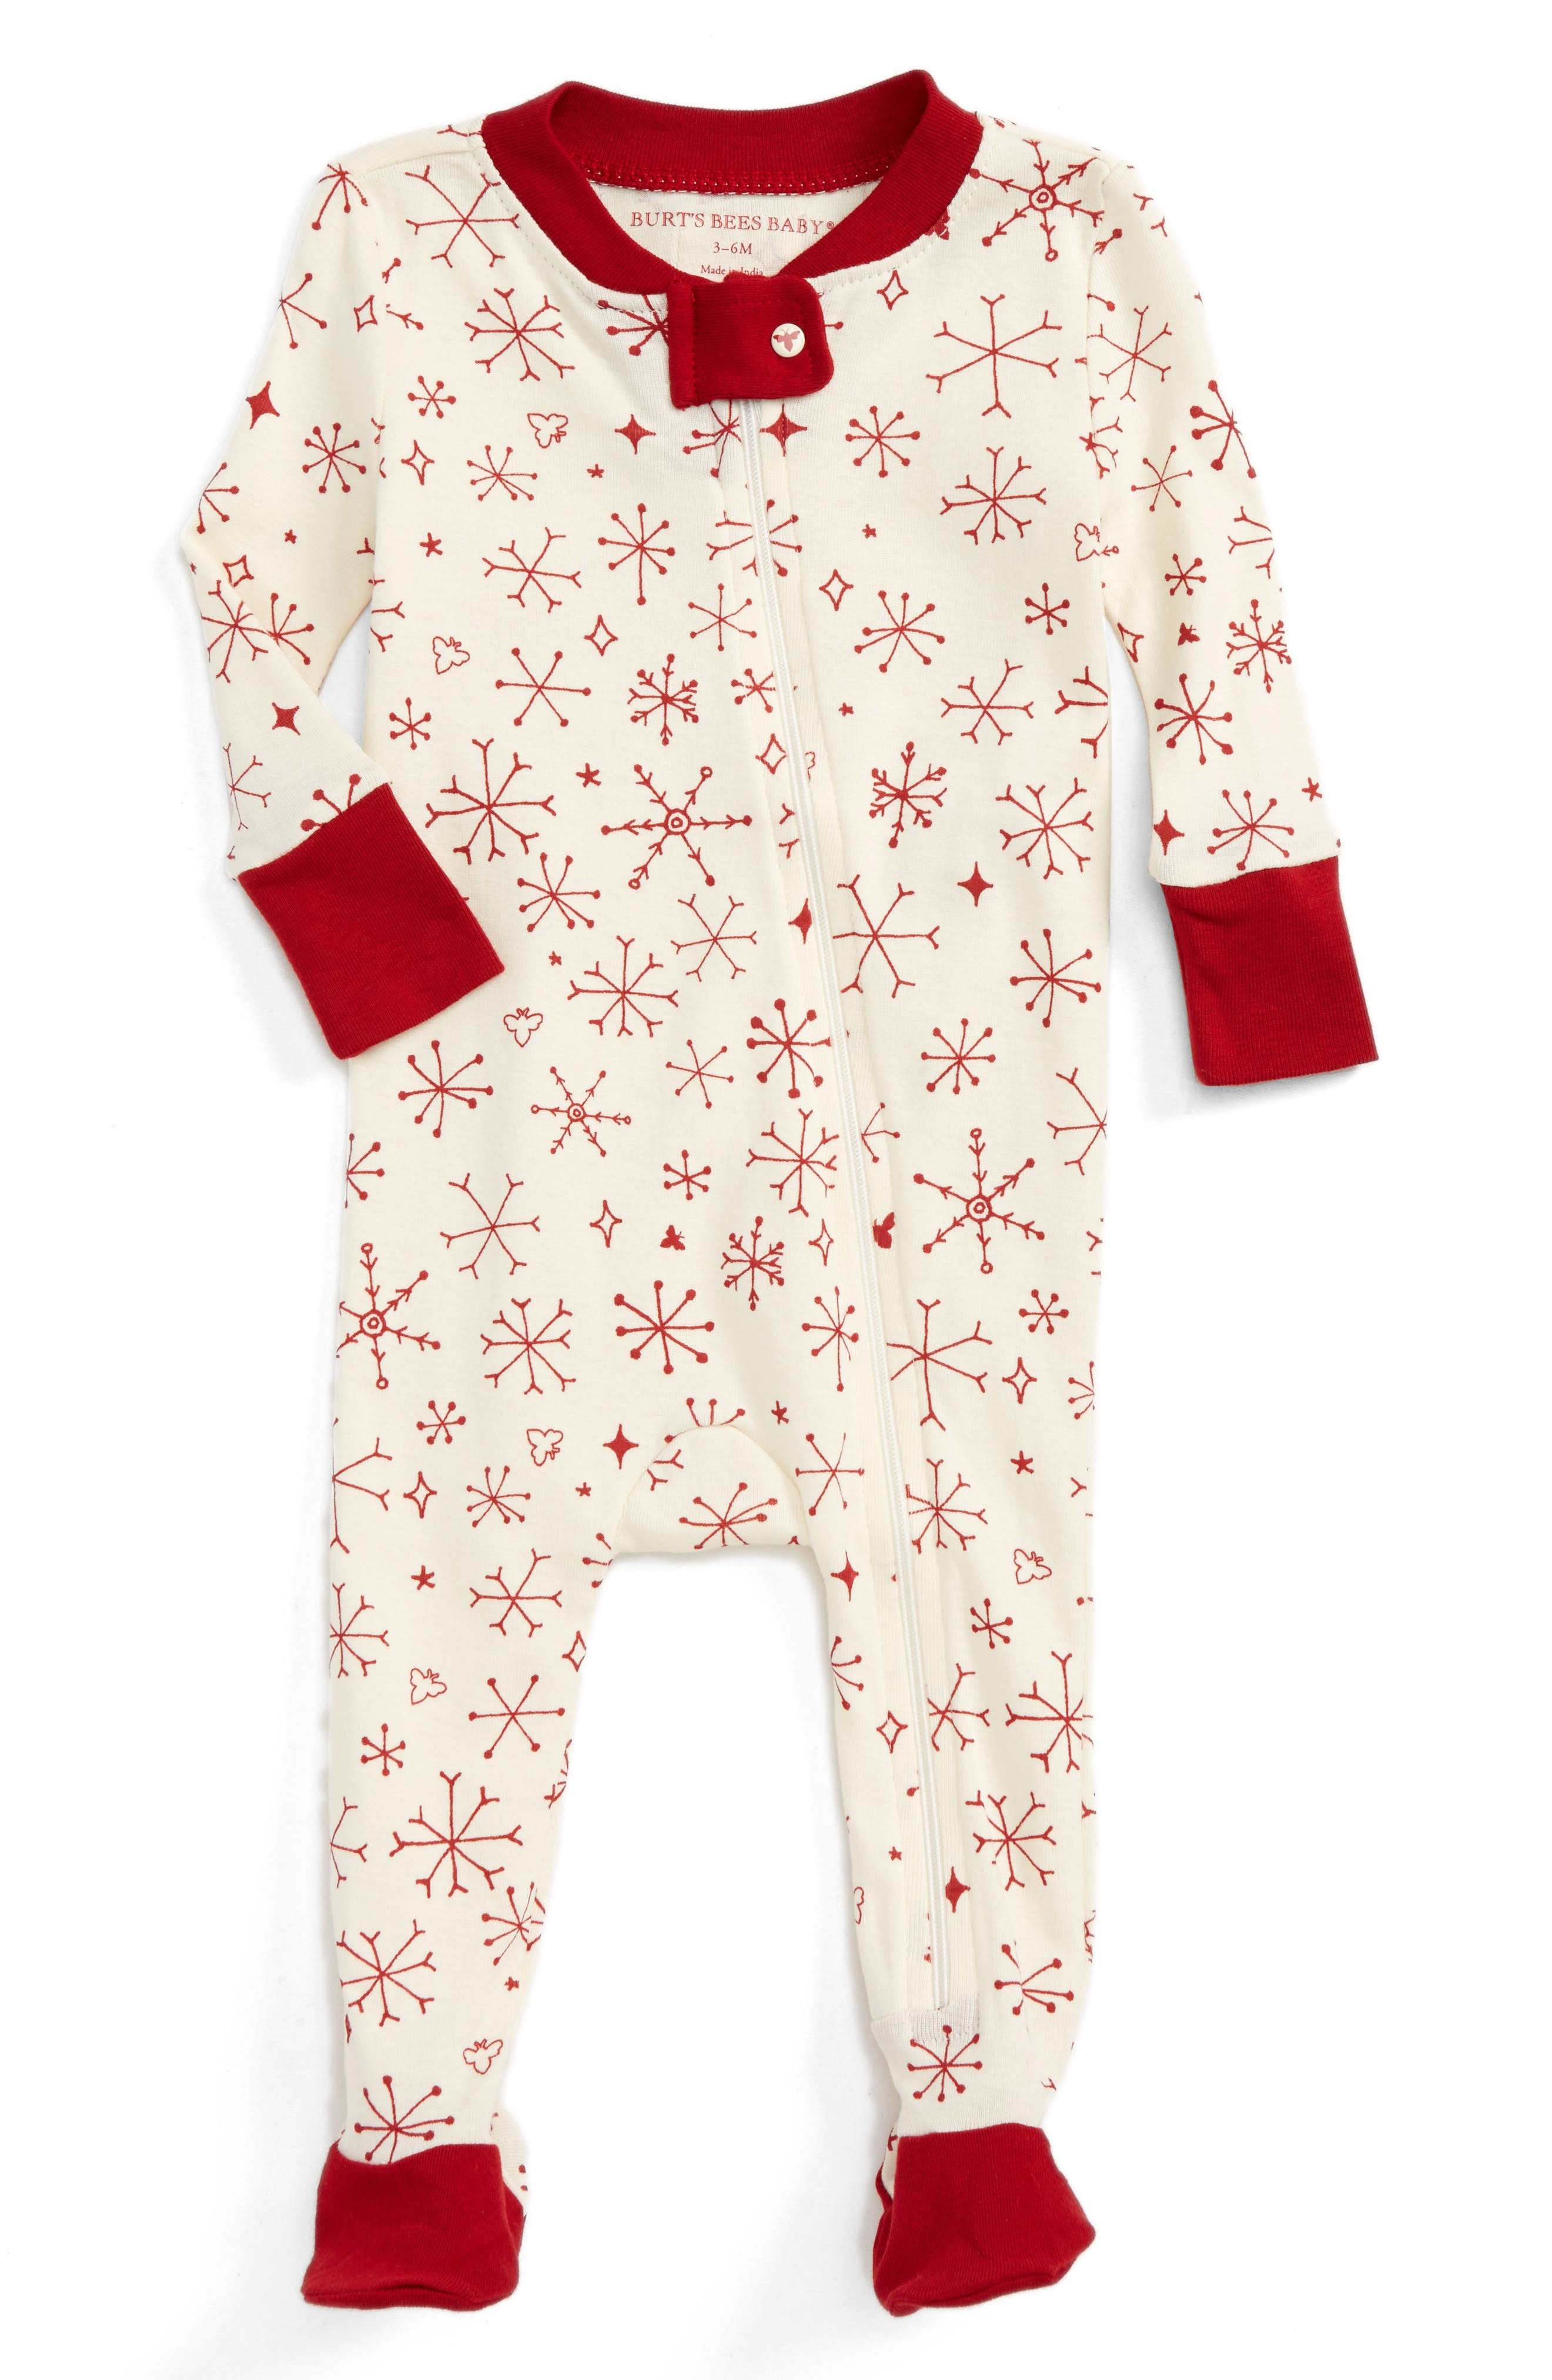 BURT'S BEES BABY Falling Snowflakes Fitted One-Piece Pajamas, Main, color, 900